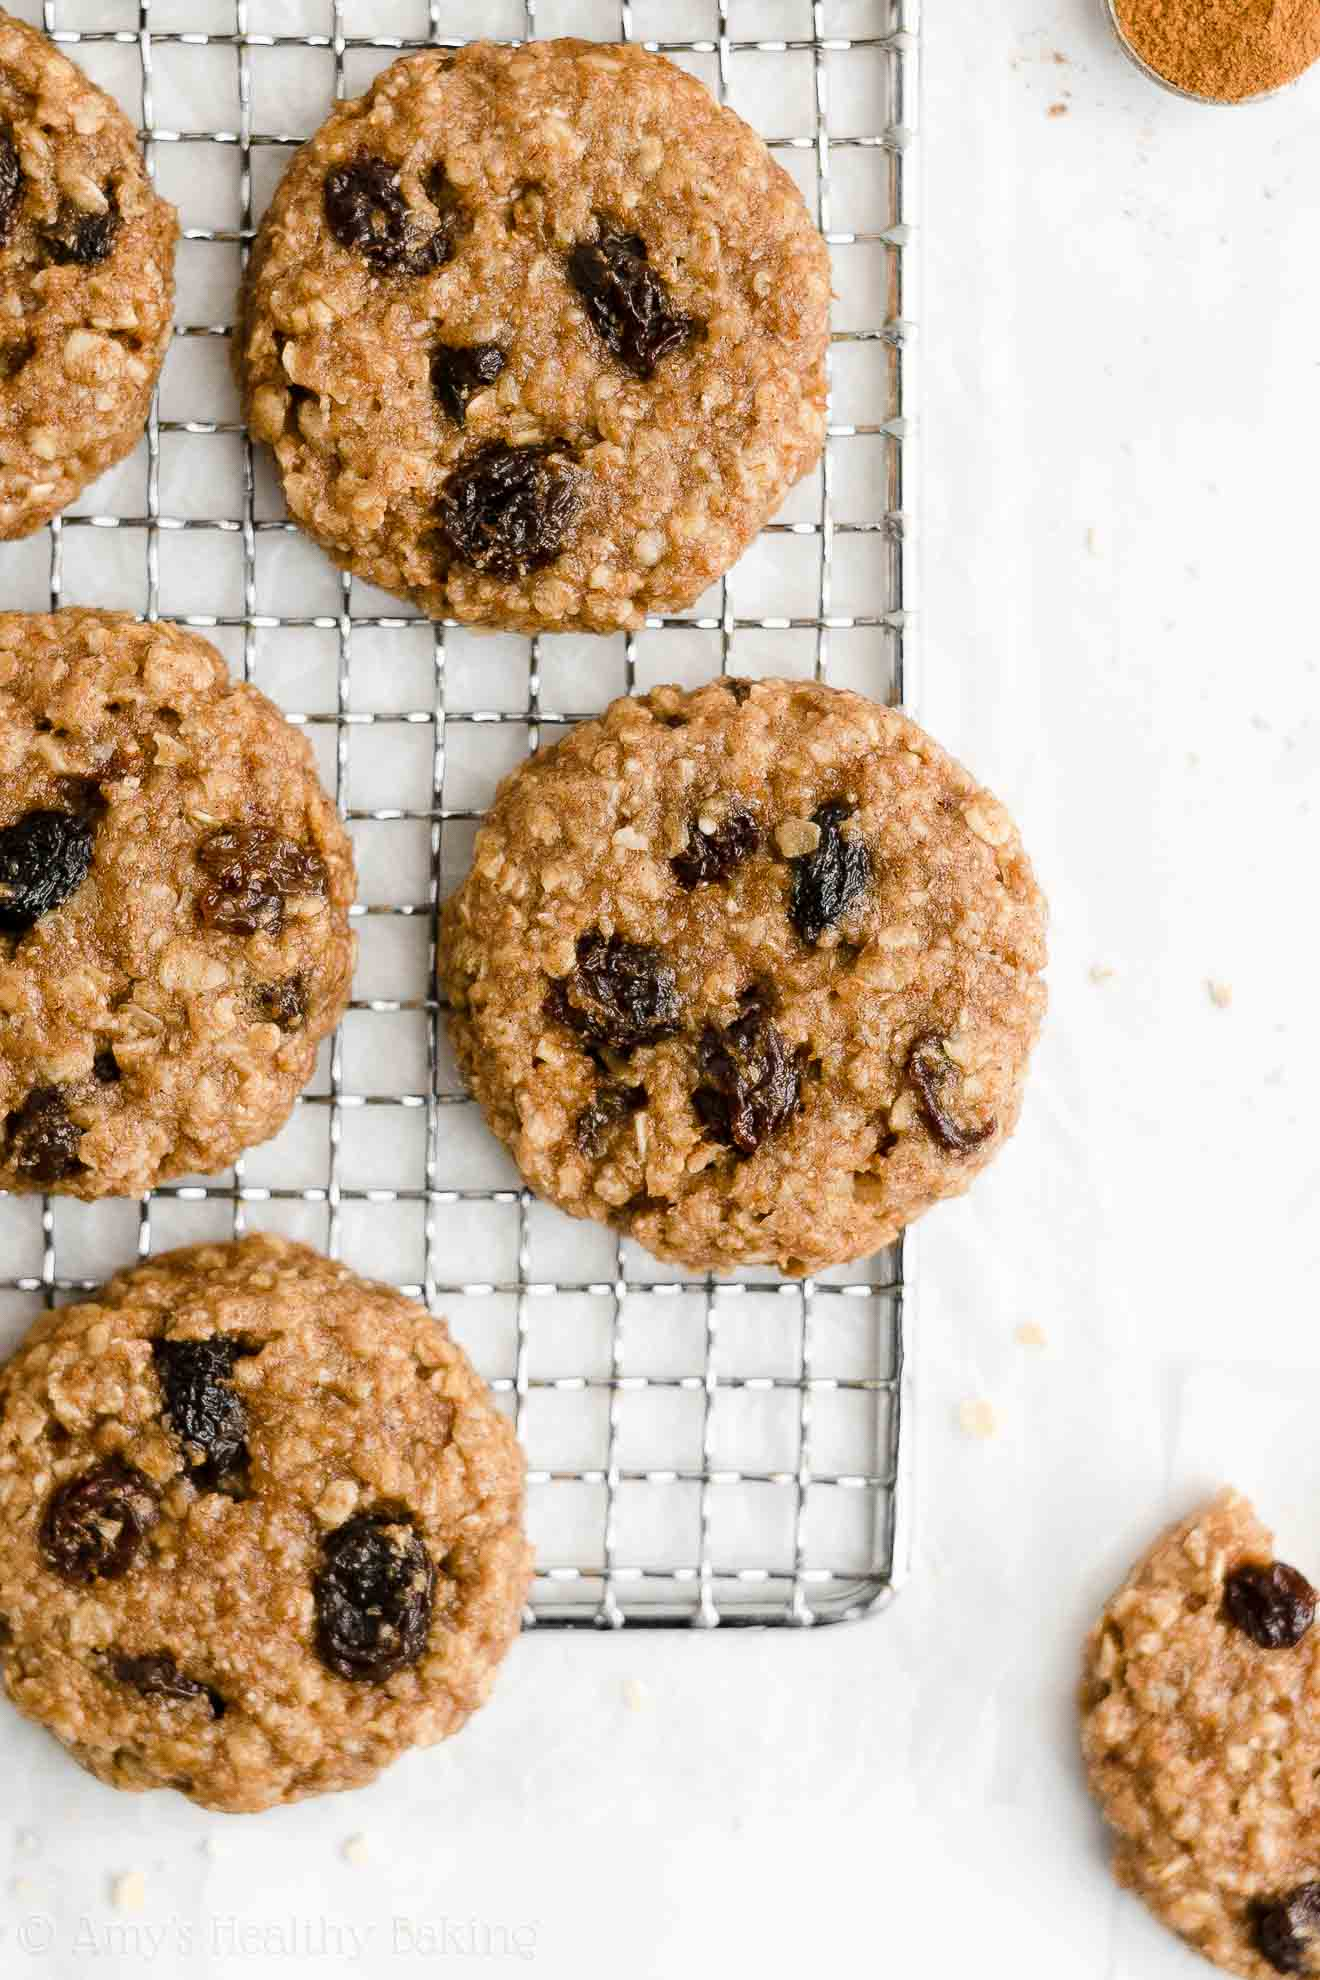 Best Ever Easy Healthy Vegan Gluten Free Dairy Free Oatmeal Raisin Cookies